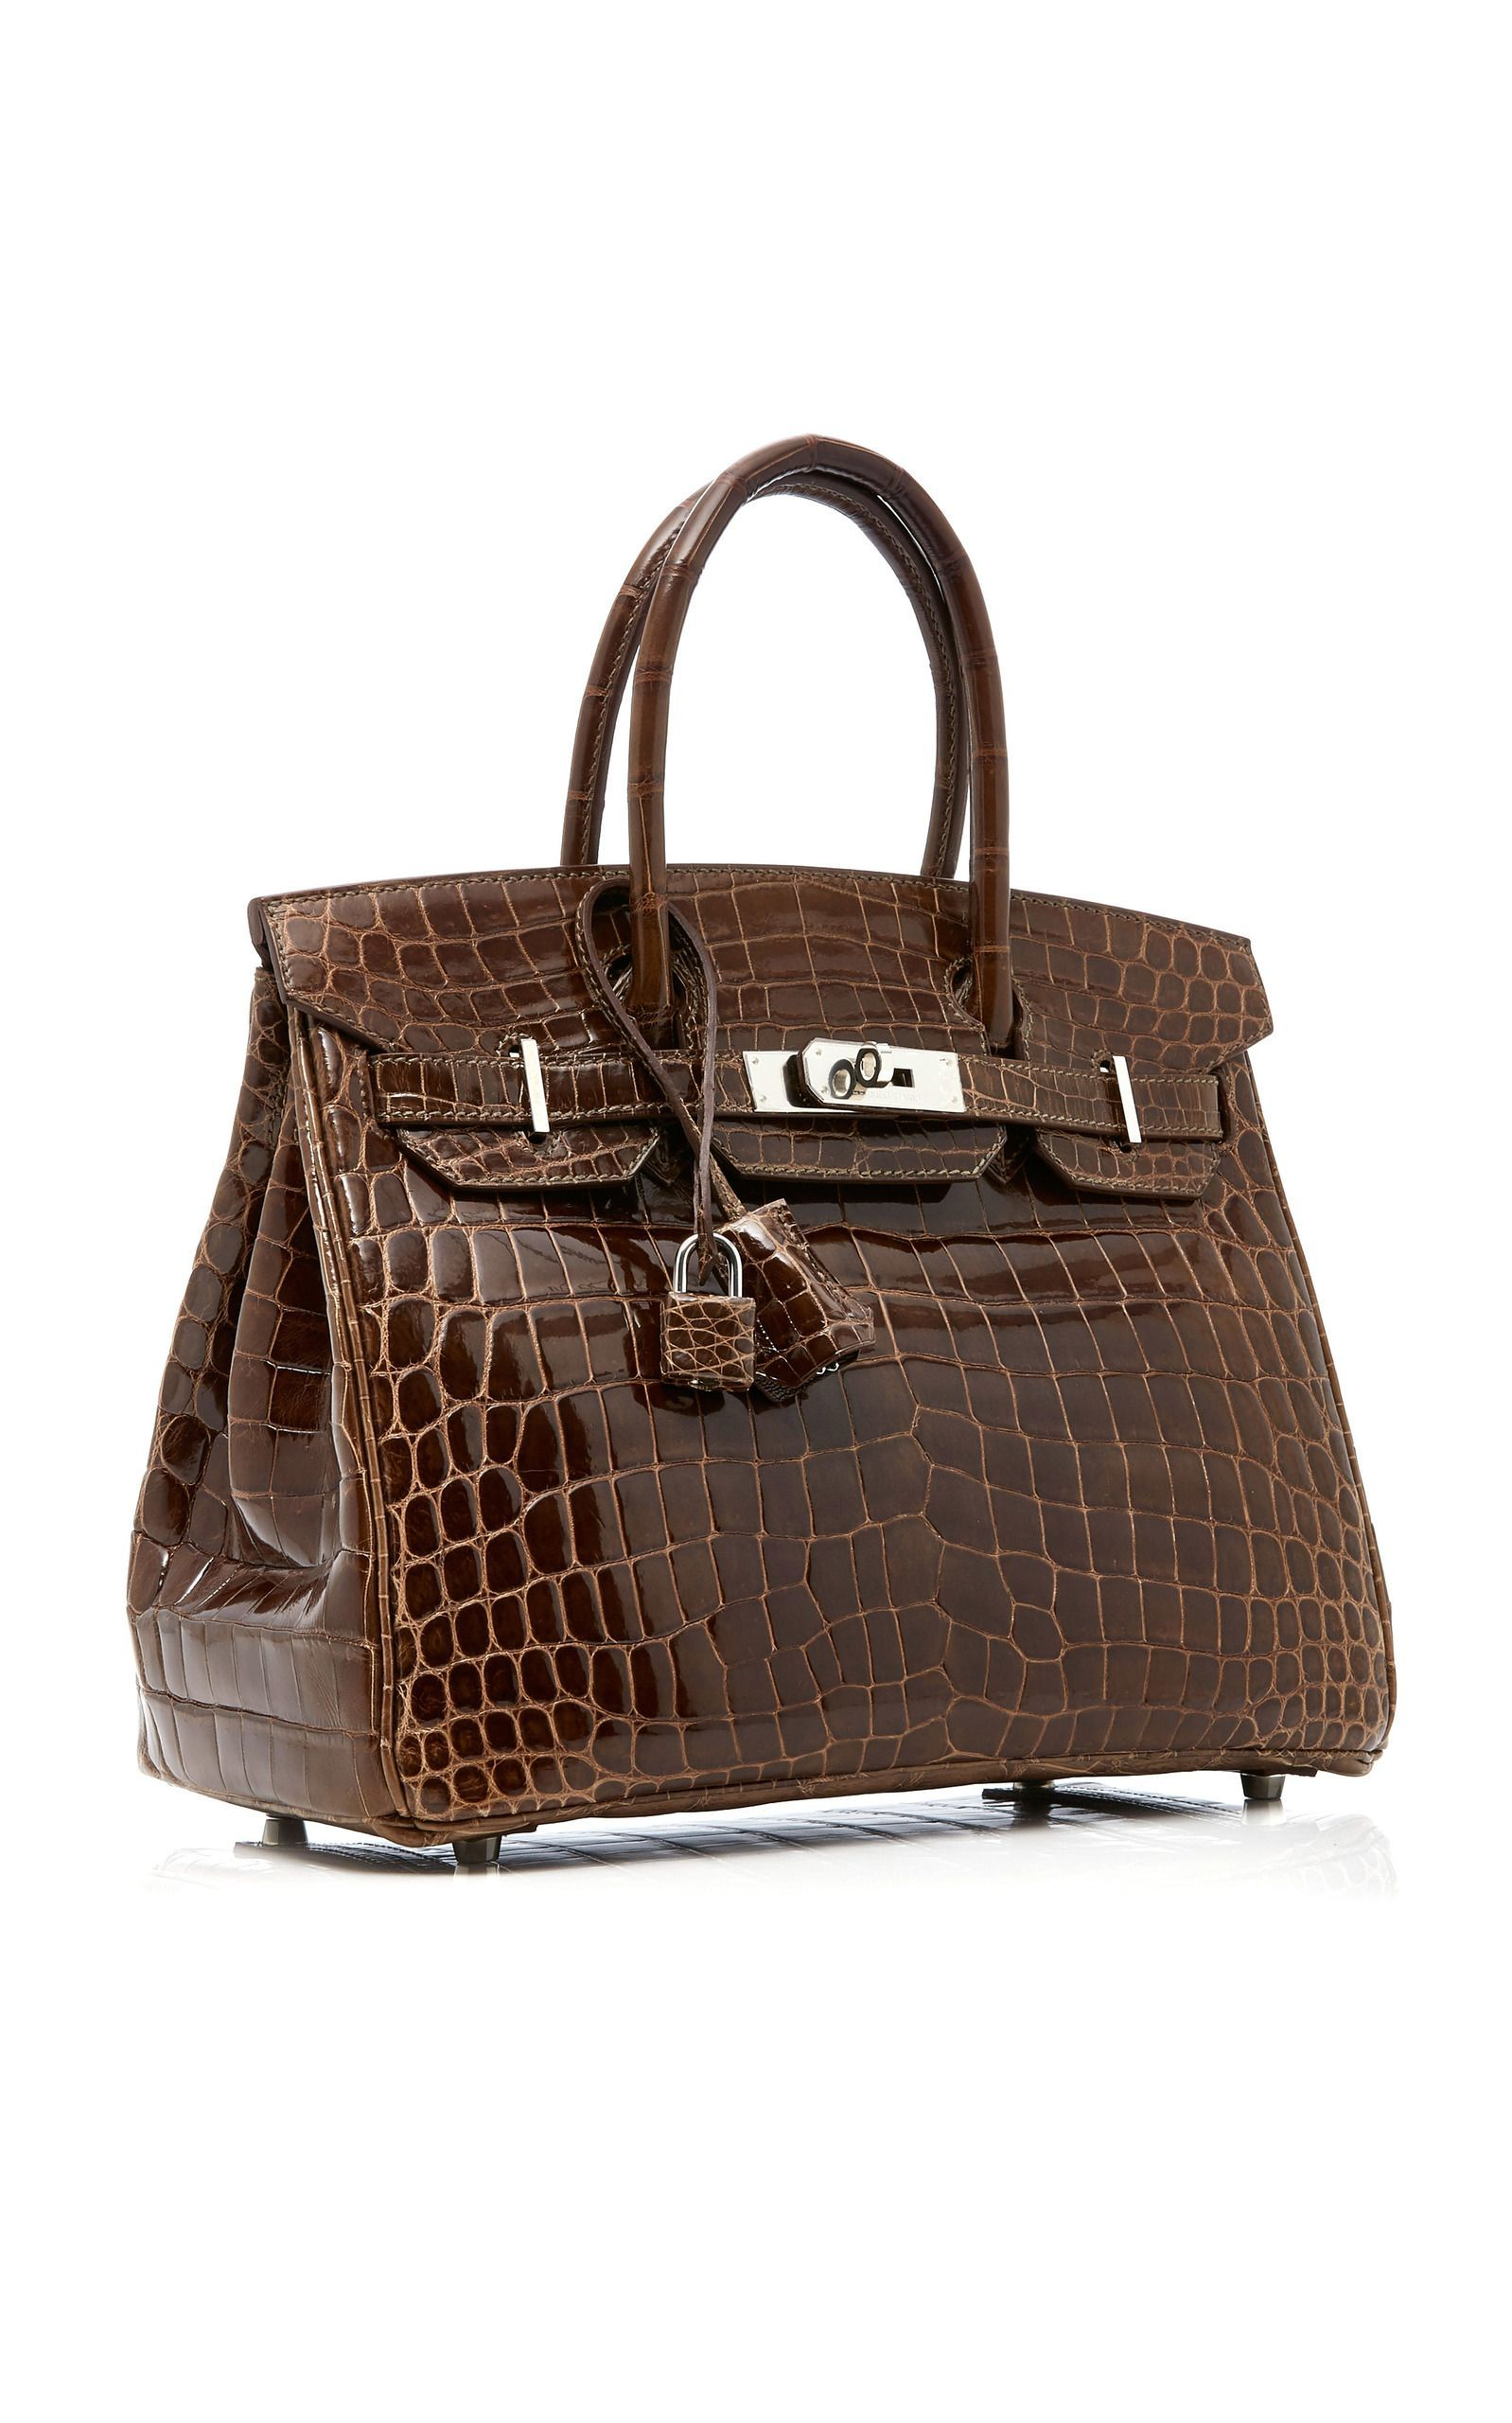 2afee0e3ce Heritage Auctions Special Collections Hermes 30cm Gris Elephant Shiny Nilo  Crocodile Birkin